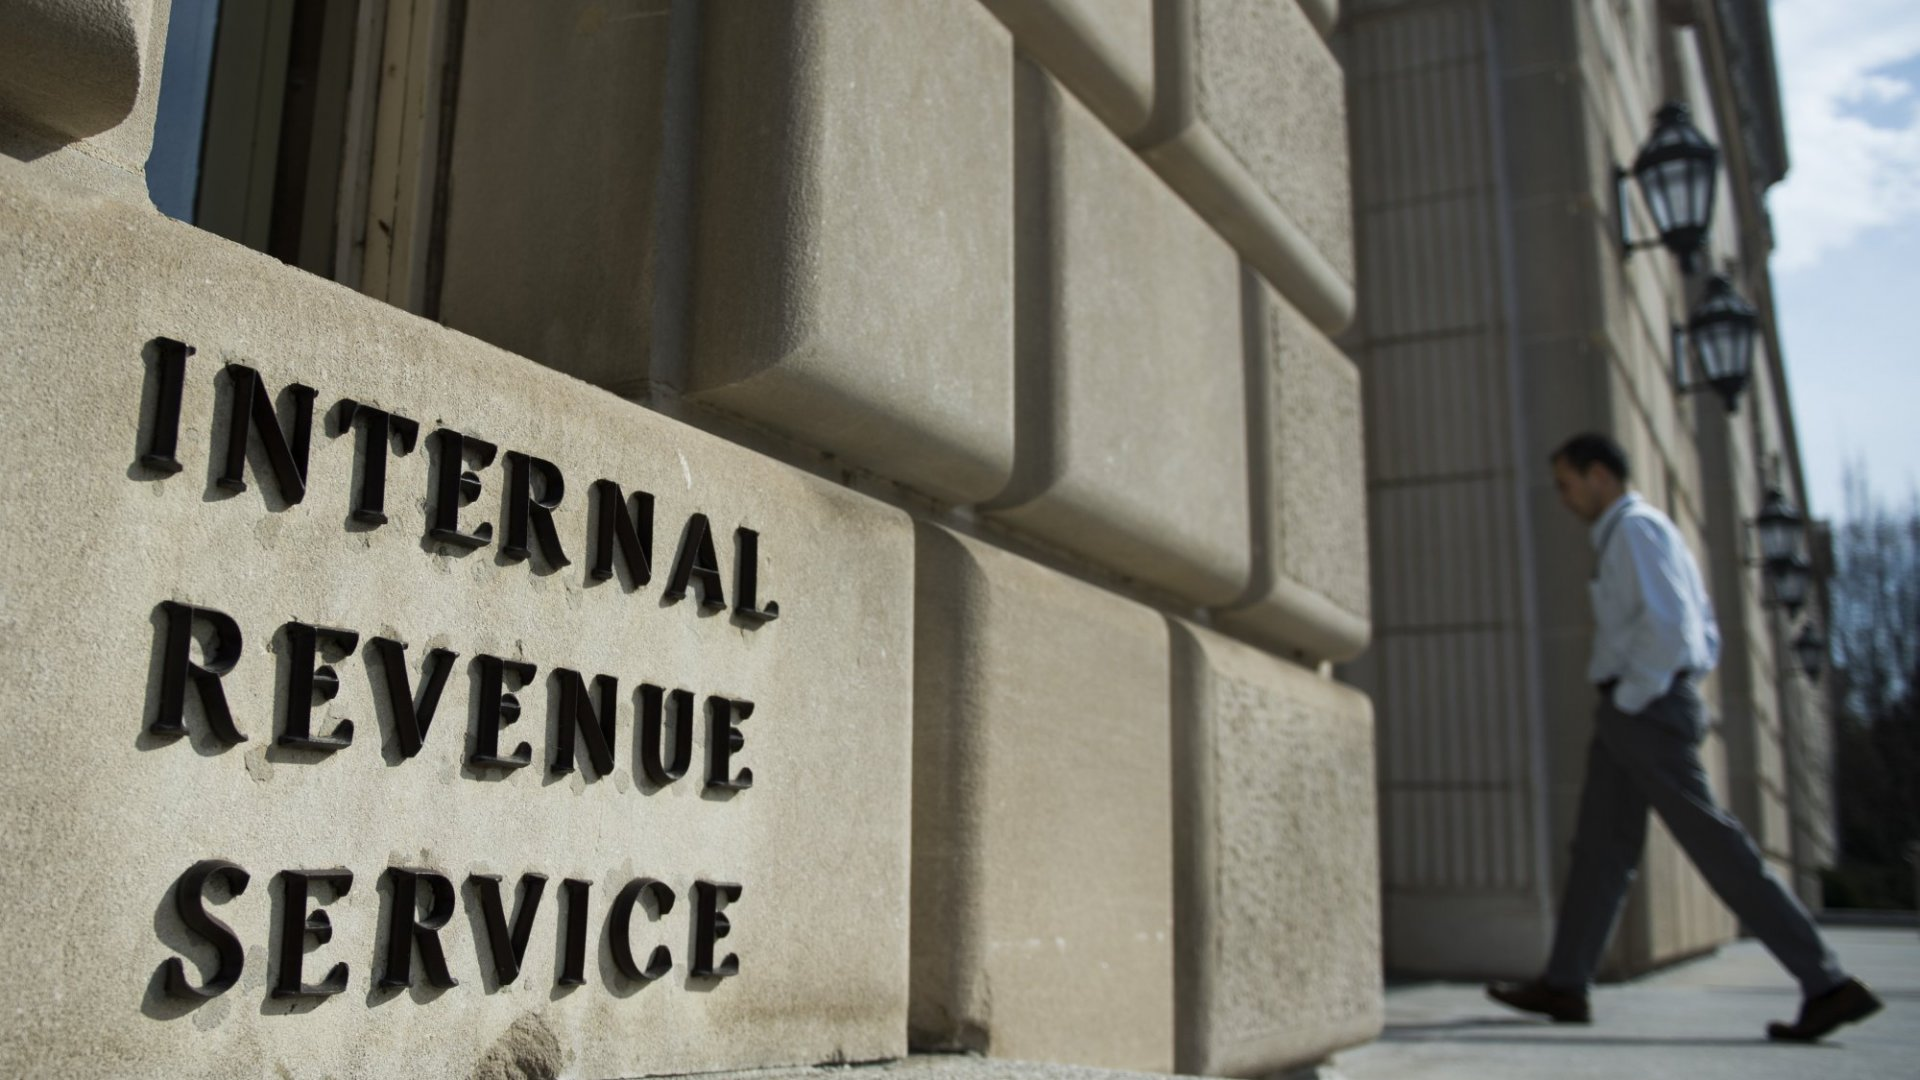 The IRS warns that scammers are using more creative ways to trick businesses and individuals this tax season.